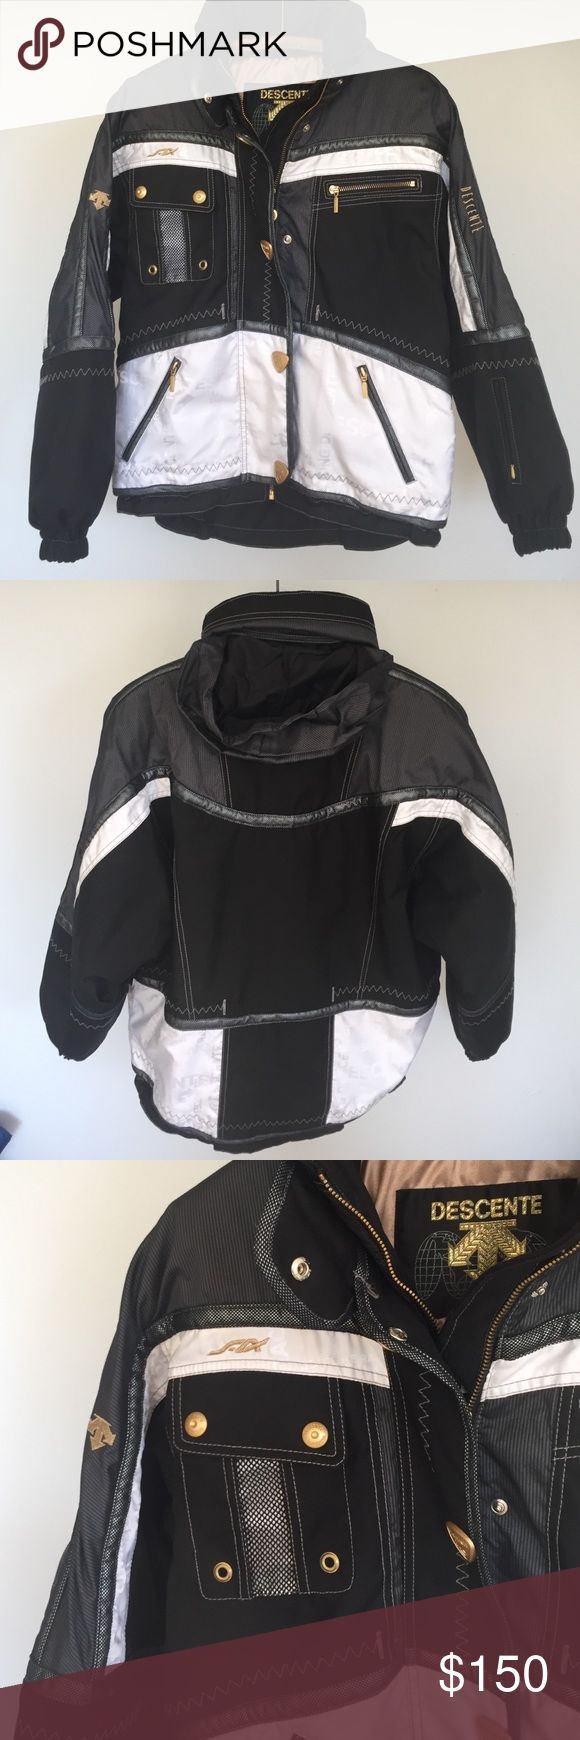 Descente ski jacket Mint condition. No issues. Worn once. Warm ski jacket. Cool color combo. Lots of pockets descente Jackets & Coats